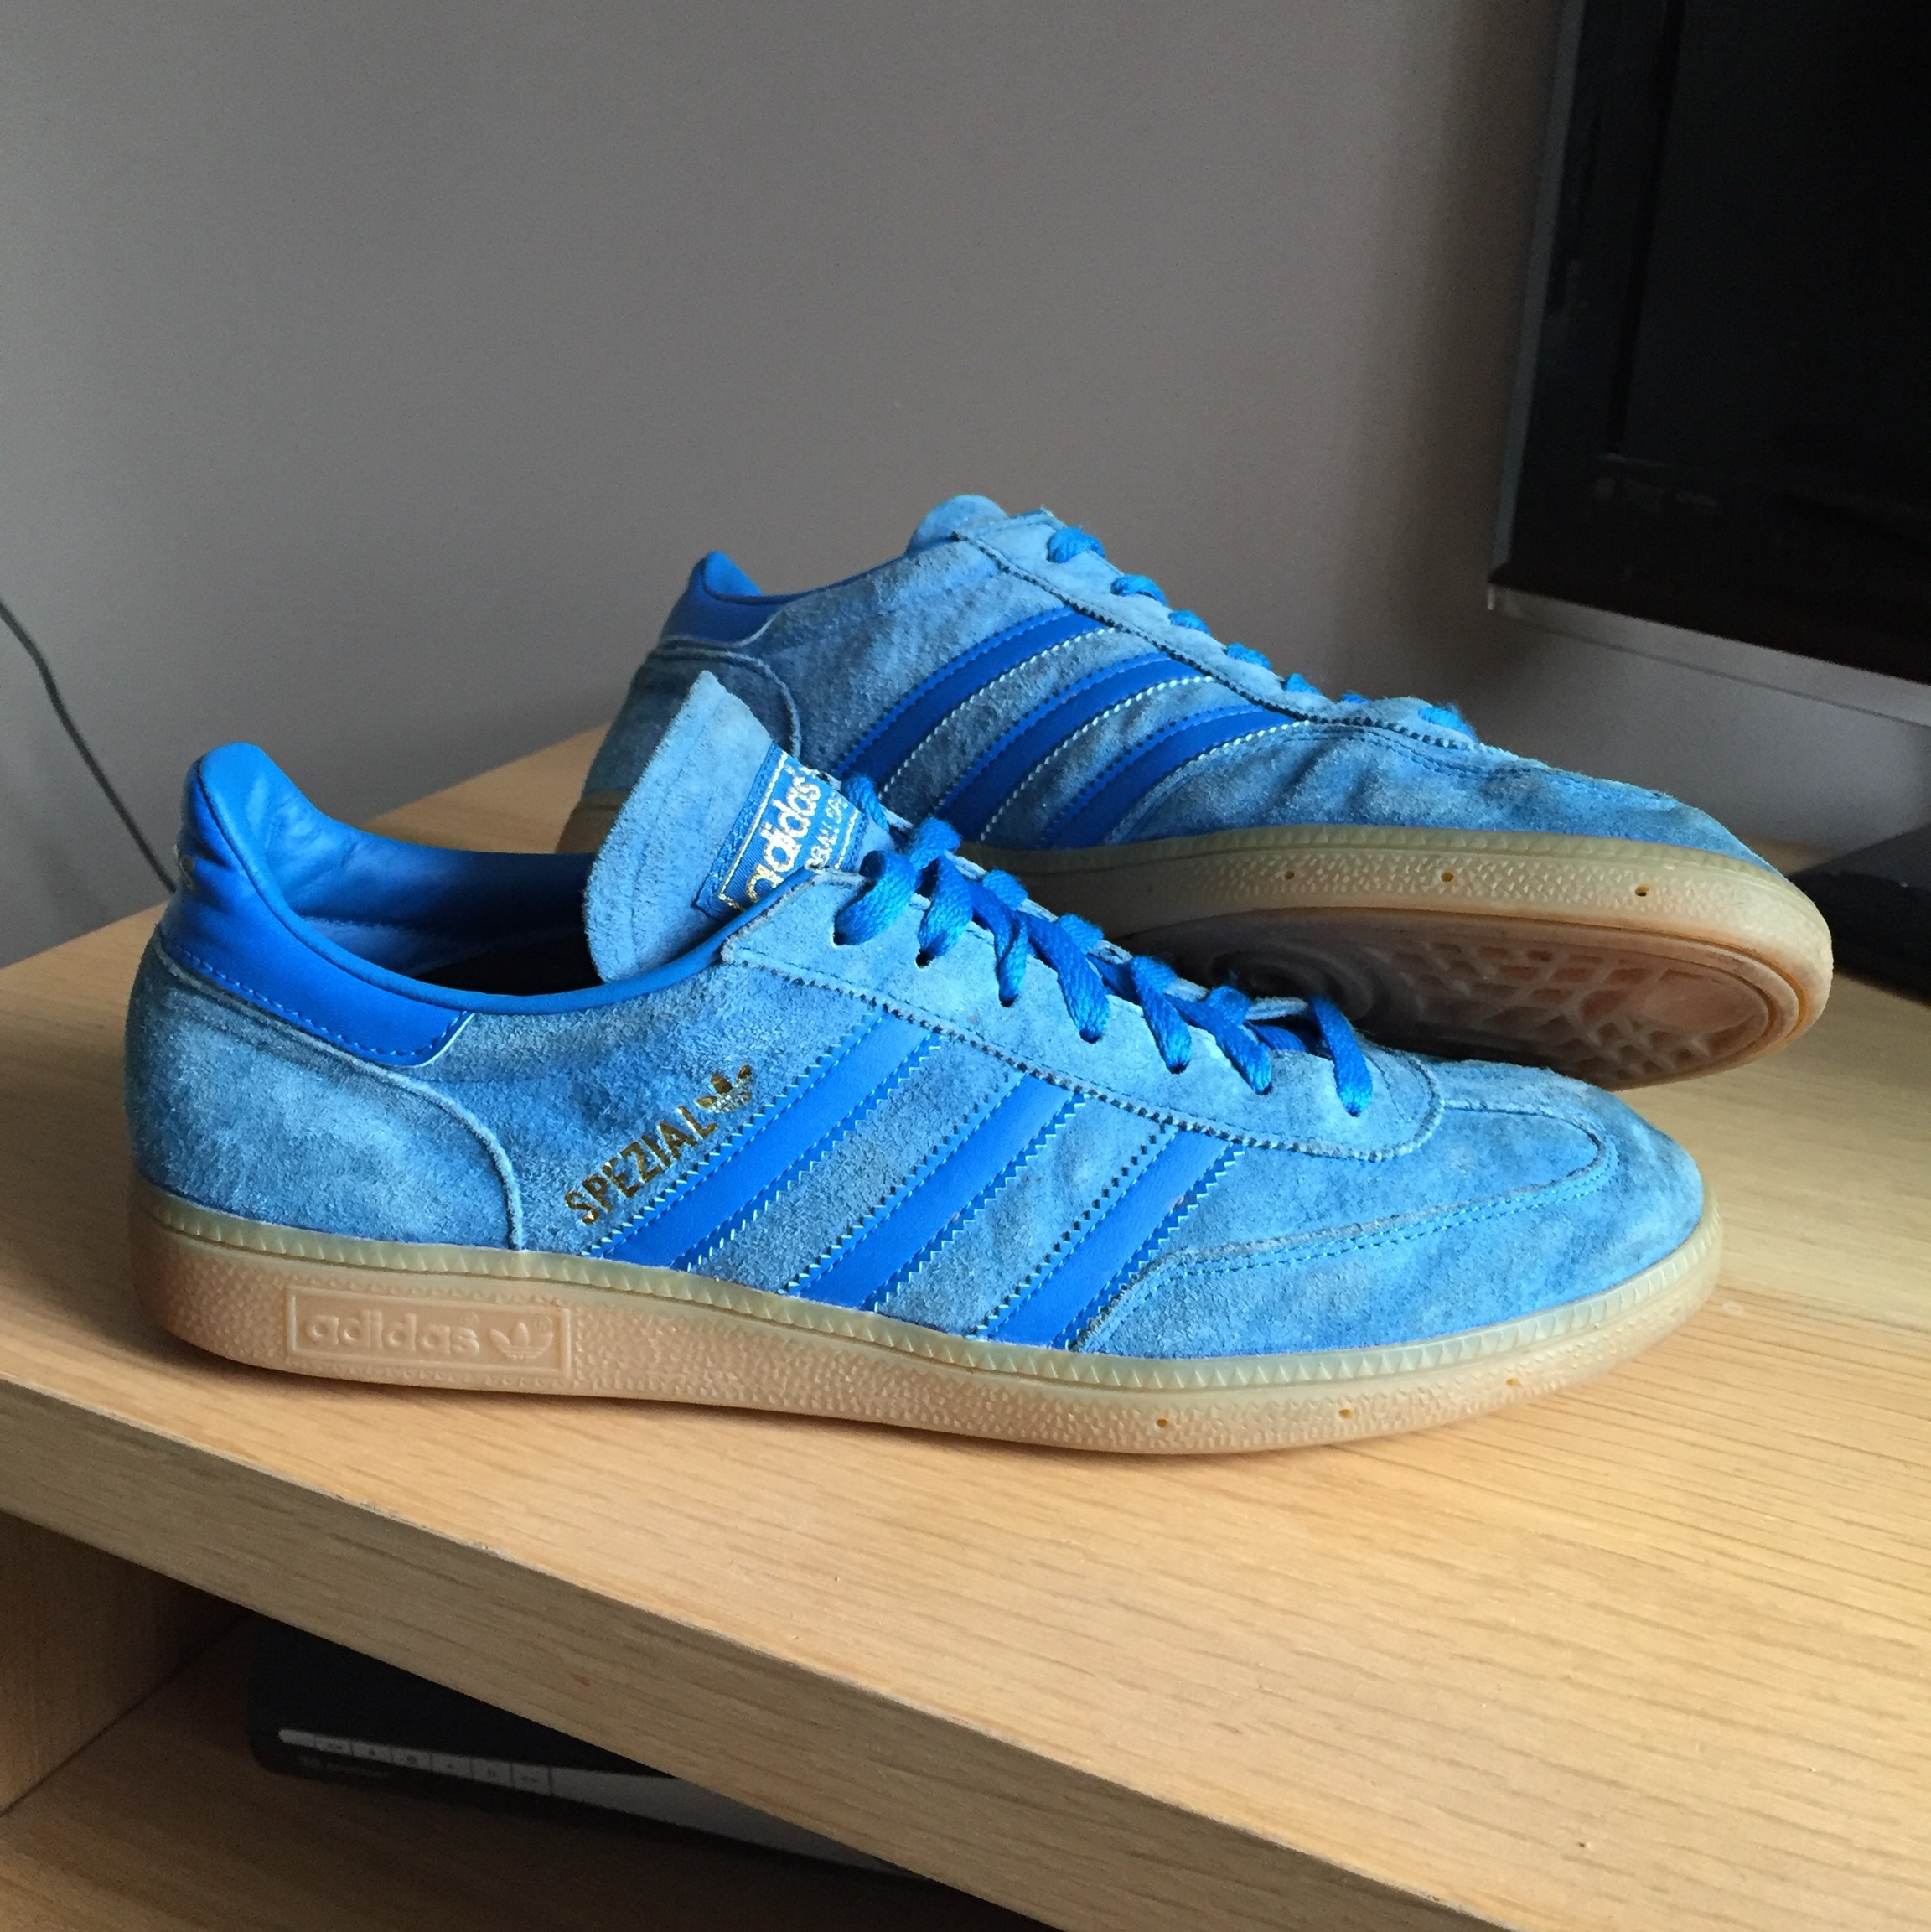 wholesale online 2018 sneakers no sale tax ADIDAS SPEZIAL BLUE/GUM UK10 - 8/10 CONDITION - DM ...